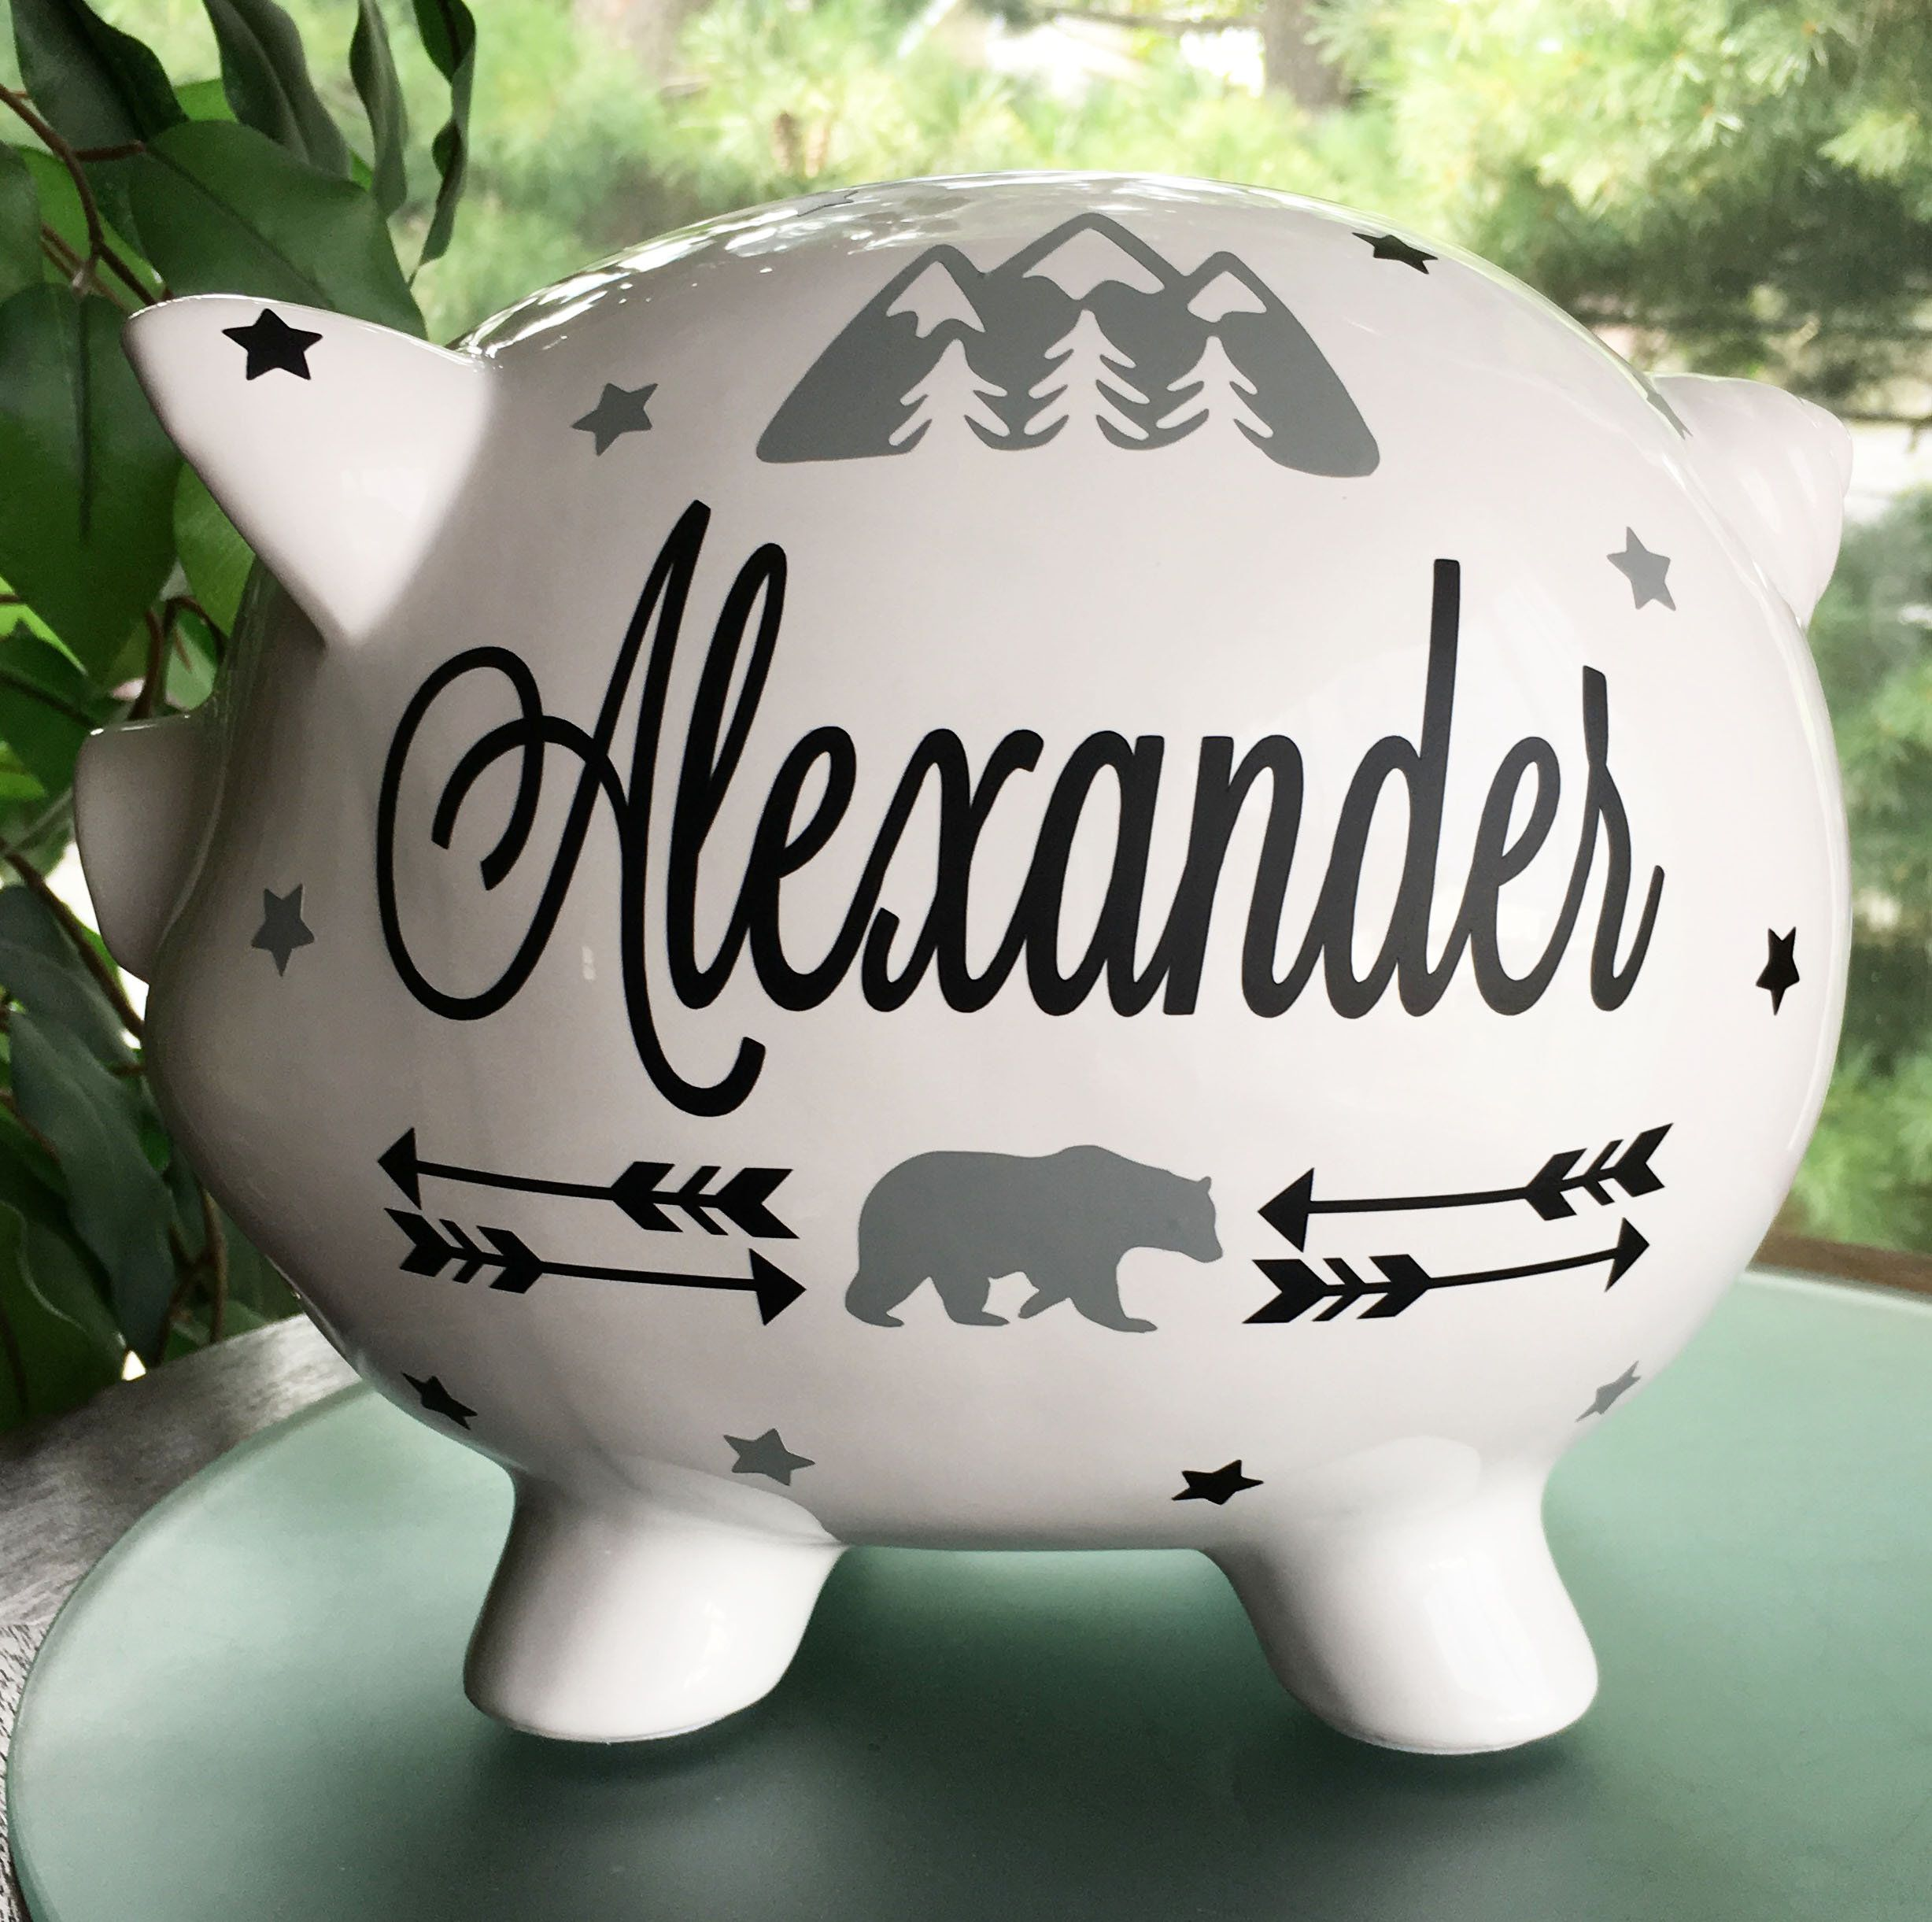 Piggy Bank Personalized Piggy Bank For Baby Boy Baby Boy Shower Gift Toddler Boy Gift In 2020 Baby Shower Gifts For Boys Toddler Boy Gifts Personalized Piggy Bank